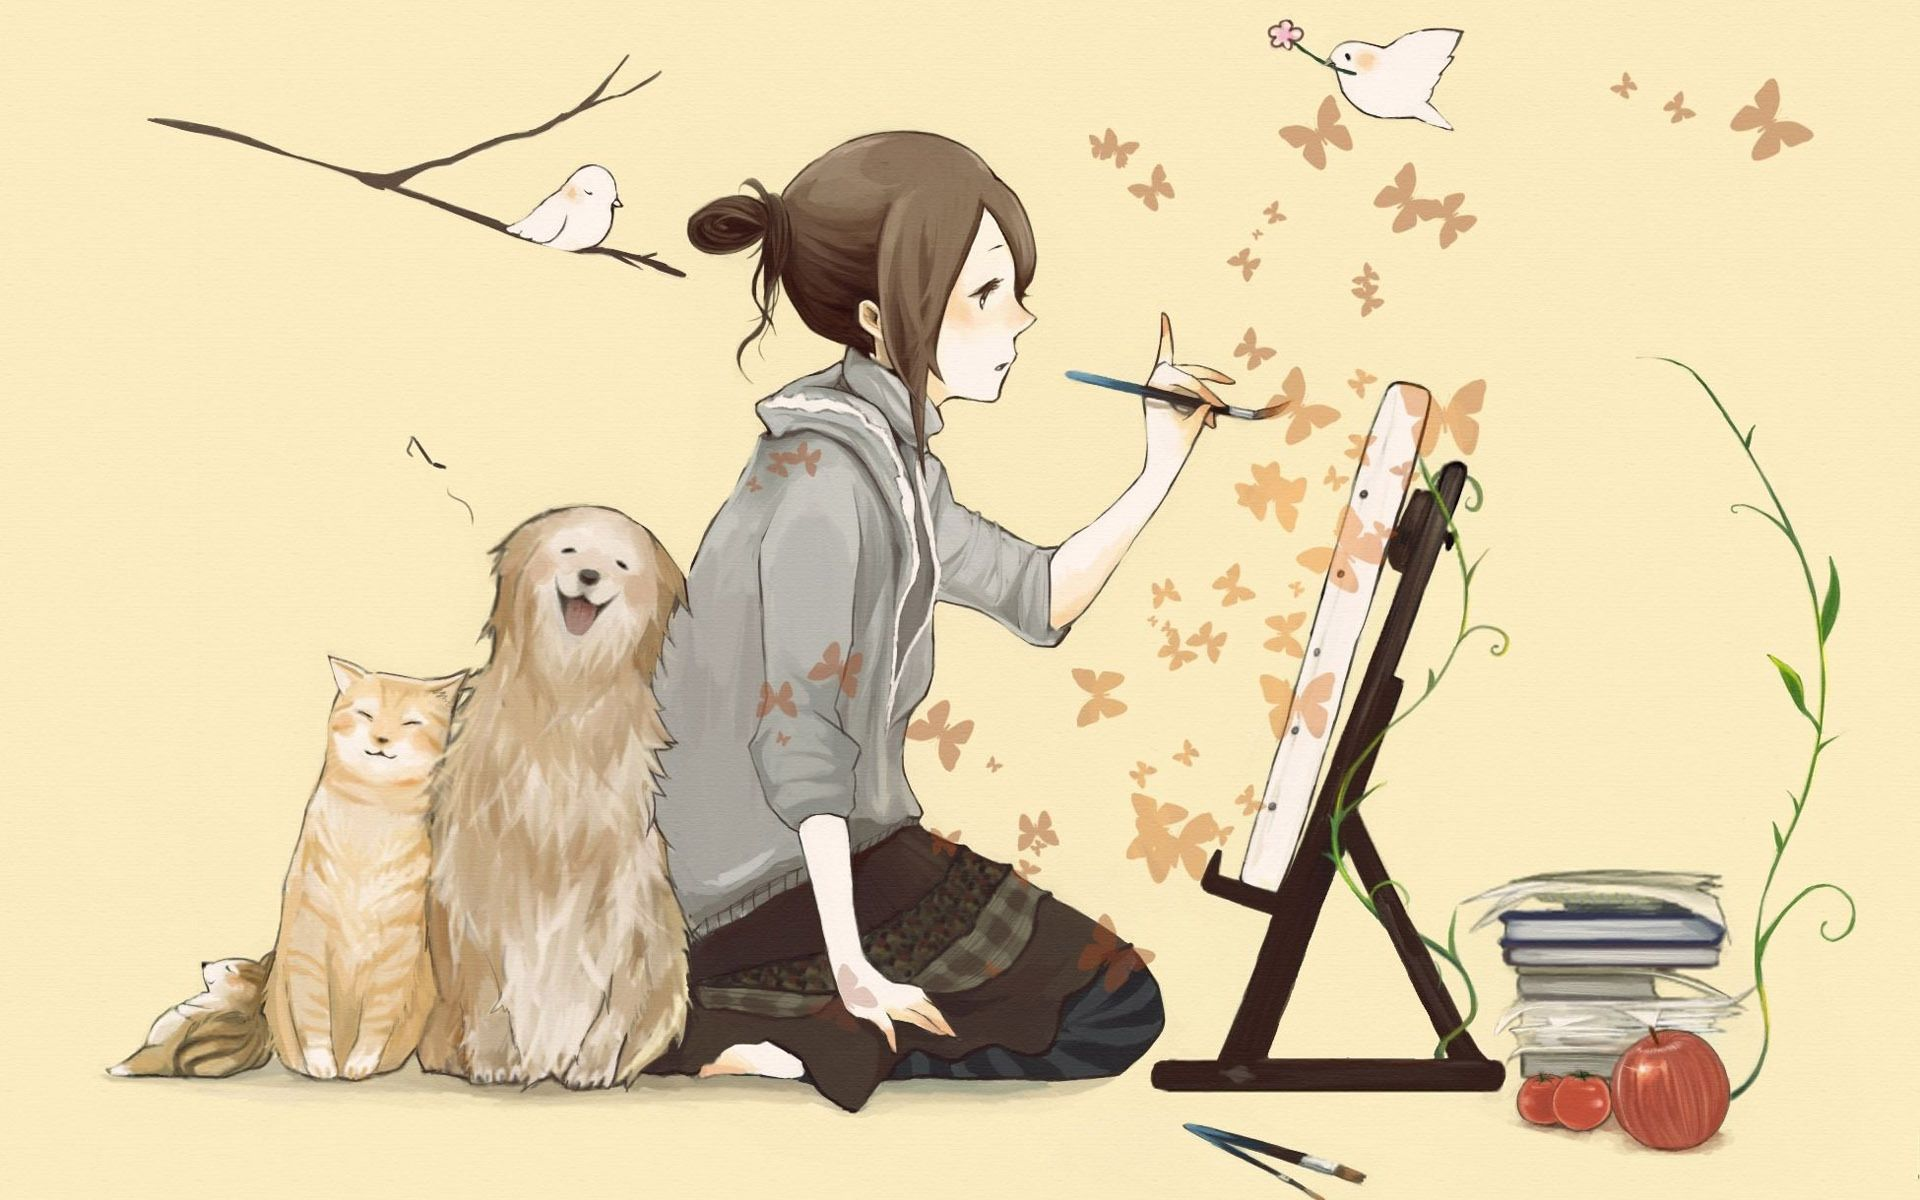 Pix For Gt Anime Girls Painting Anime Puppy Anime Anime Art